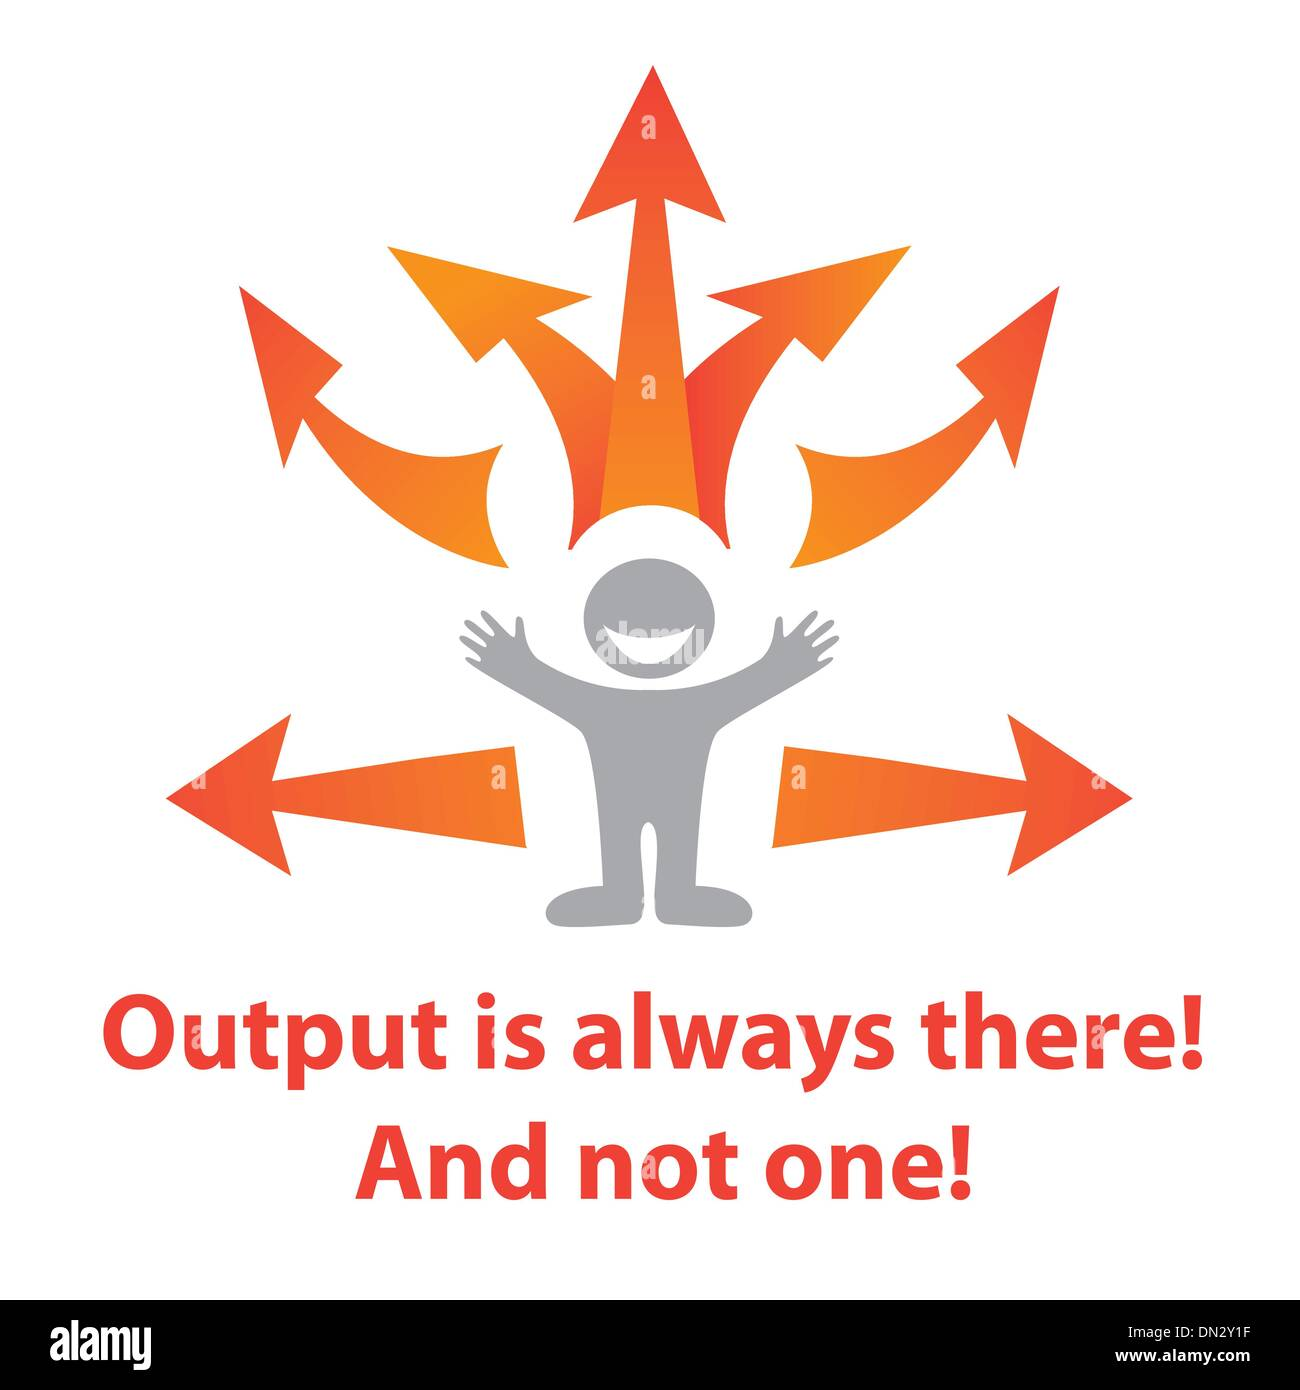 Output-is-always-there - Stock Image